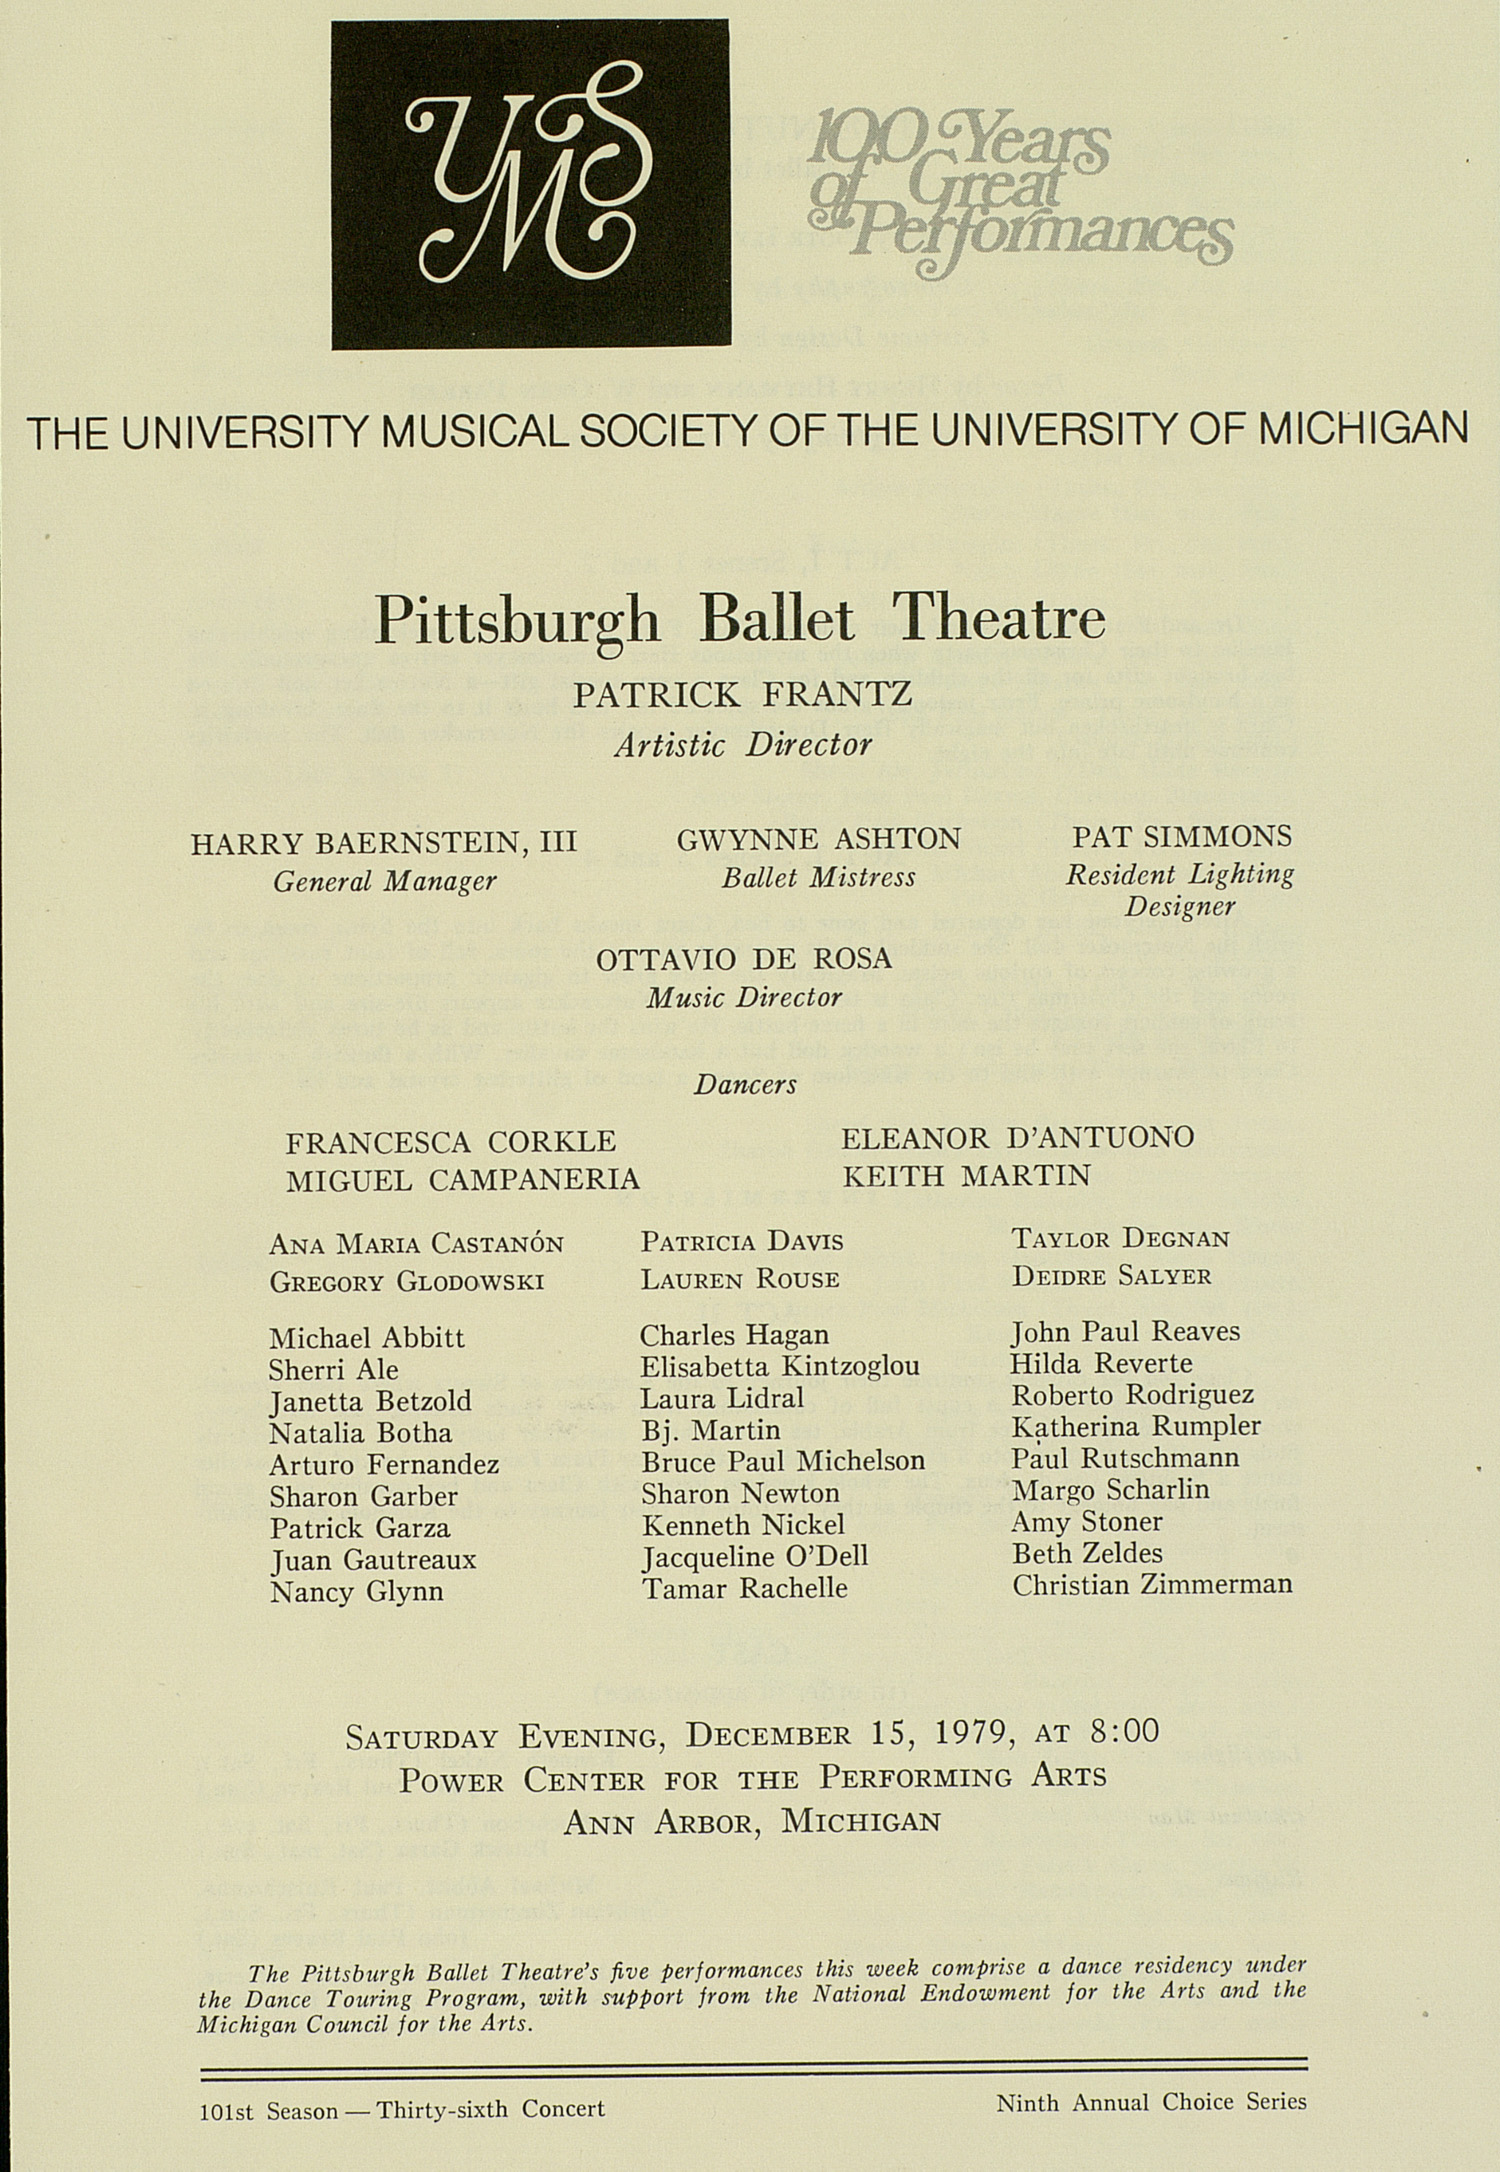 UMS Concert Program, December 15, 1979: 100 Years Of Great Performances -- Pittsburgh Ballet Theatre image